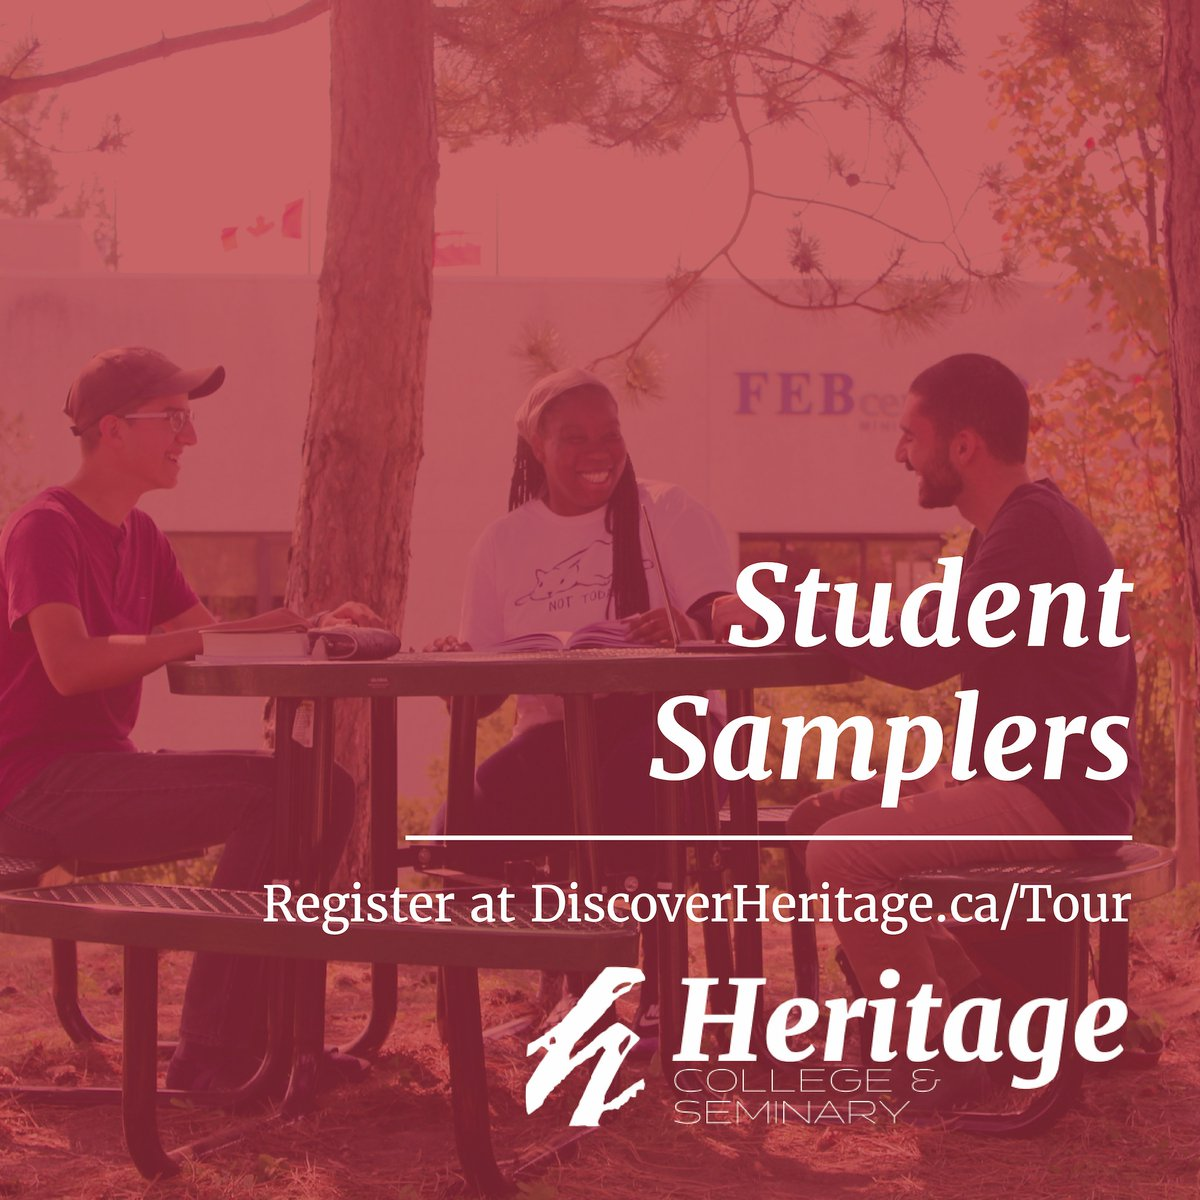 Discover life at Heritage this fall at one of our new, one-day Student Sampler events. Experience what it is like to be a college student at Heritage for a day.  Visit Heritage for our first Student Sampler of the year on Tuesday, November 17.  Sign-up at https://t.co/ToE1FWrS4v. https://t.co/z8amJ1uNWa